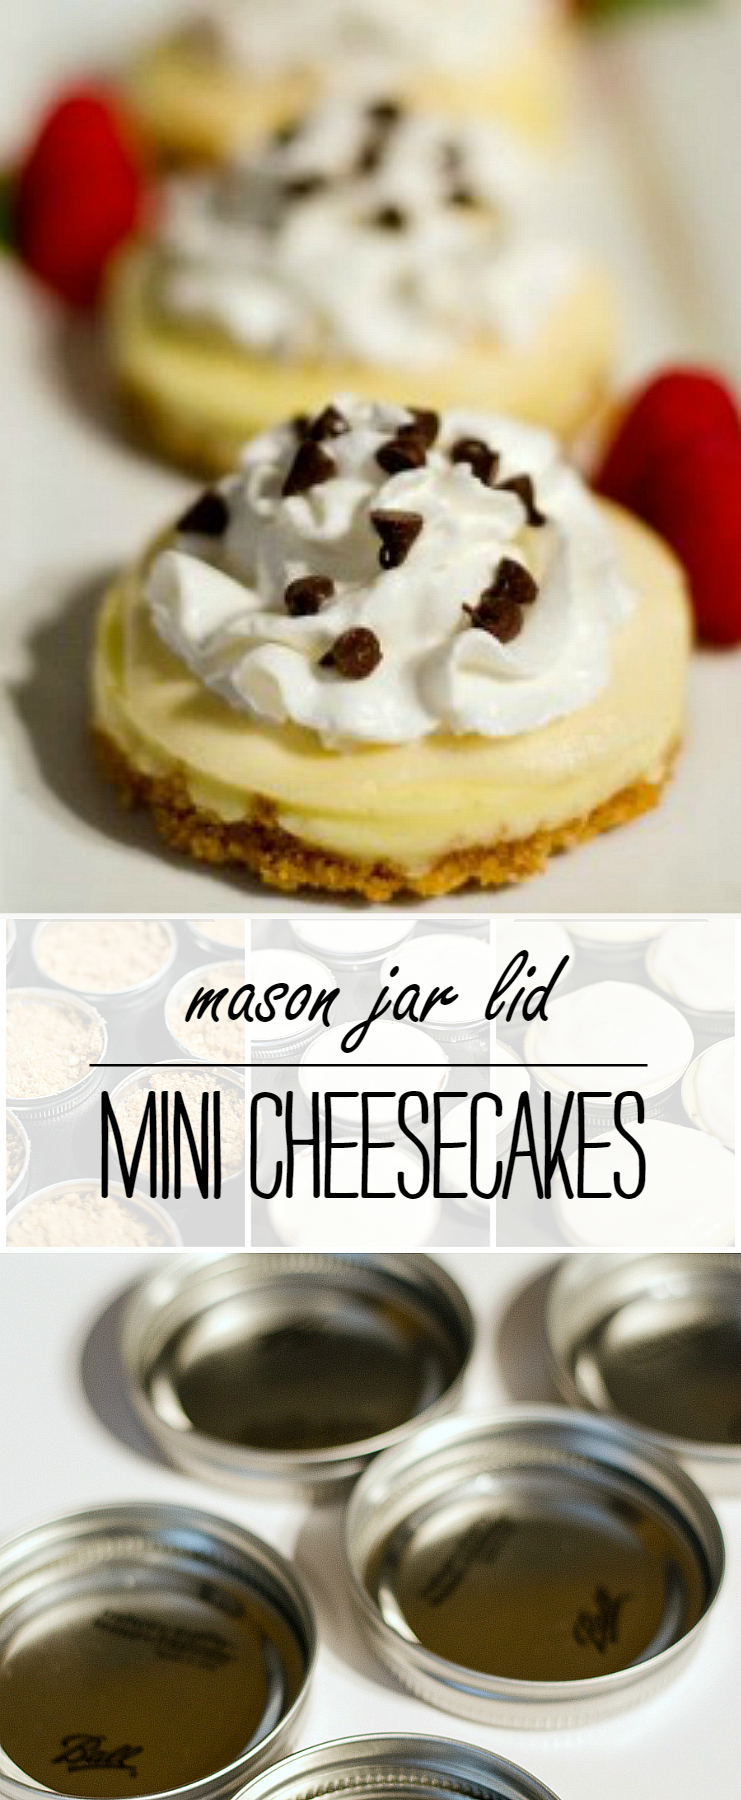 Mini Cheesecakes: Mason Jar Lid Cheesecakes